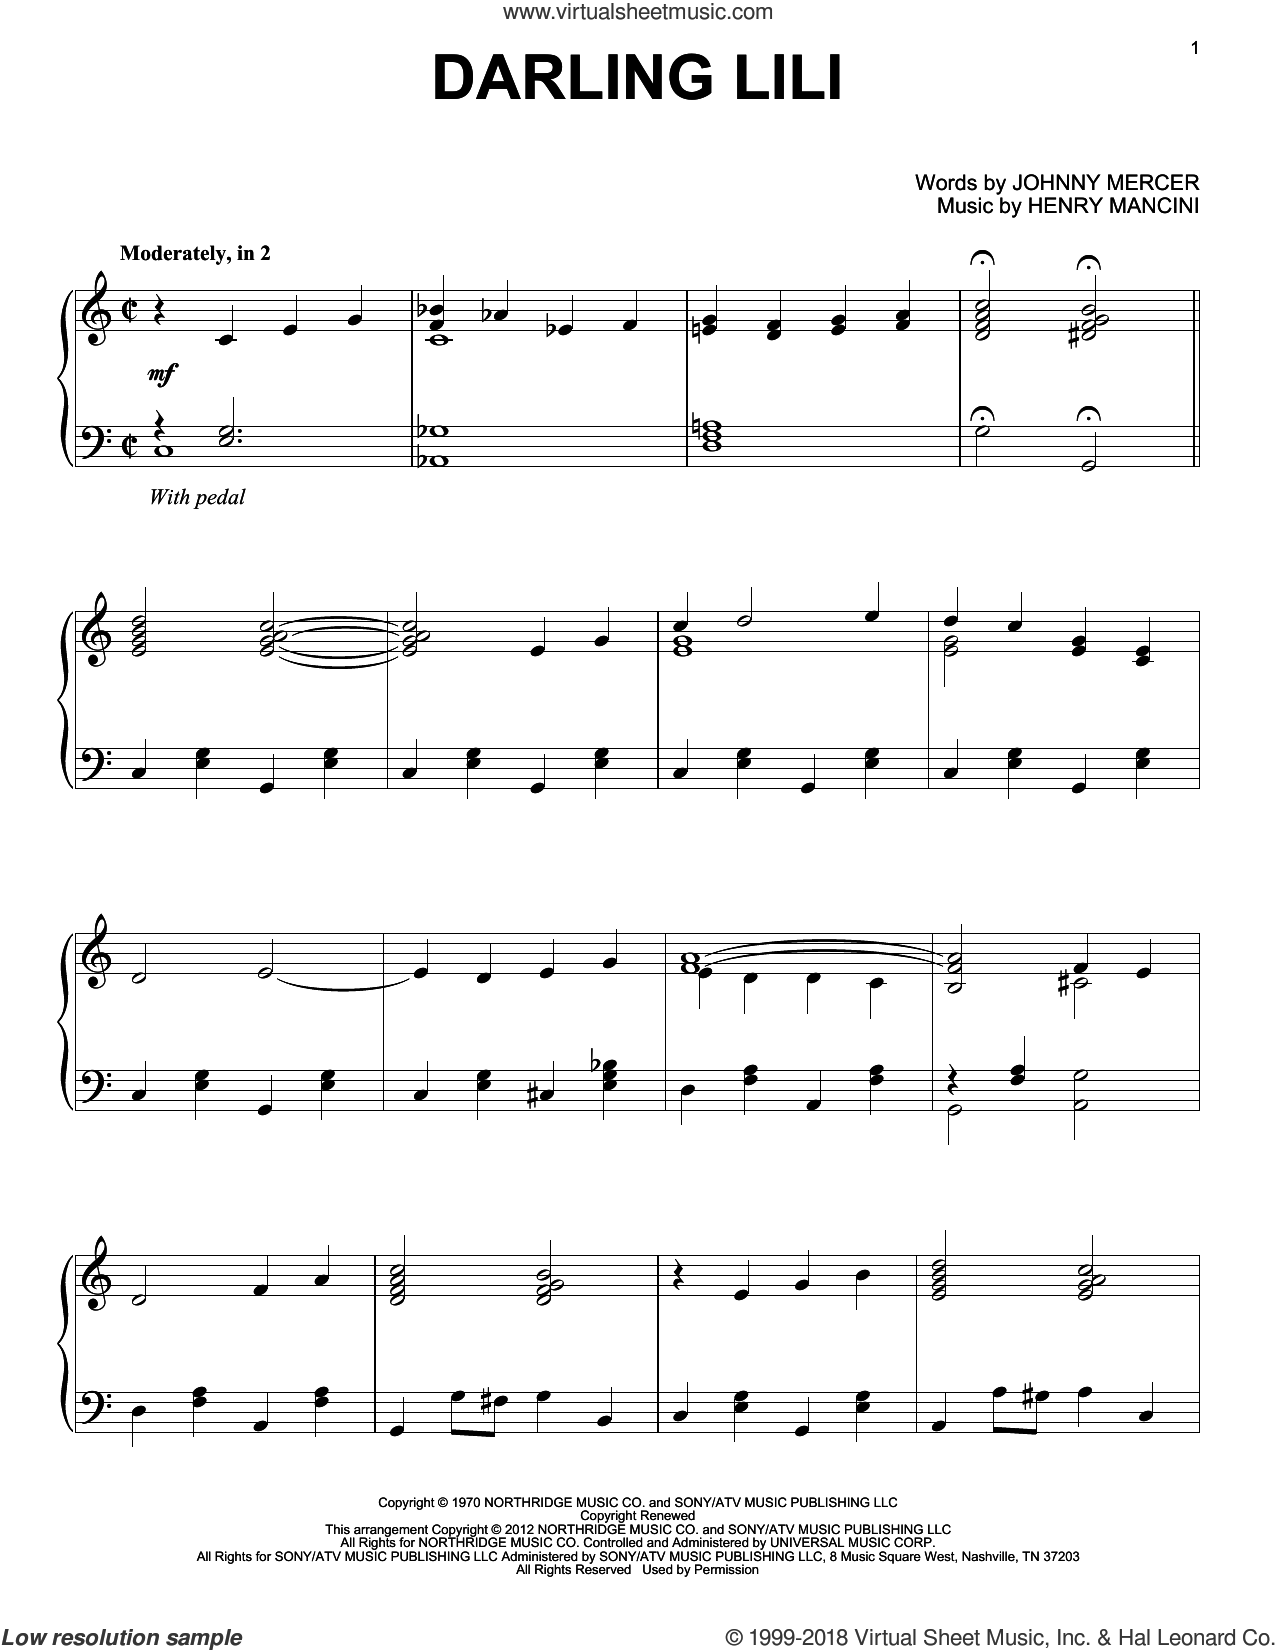 Darling Lili sheet music for piano solo by Henry Mancini and Johnny Mercer, intermediate skill level